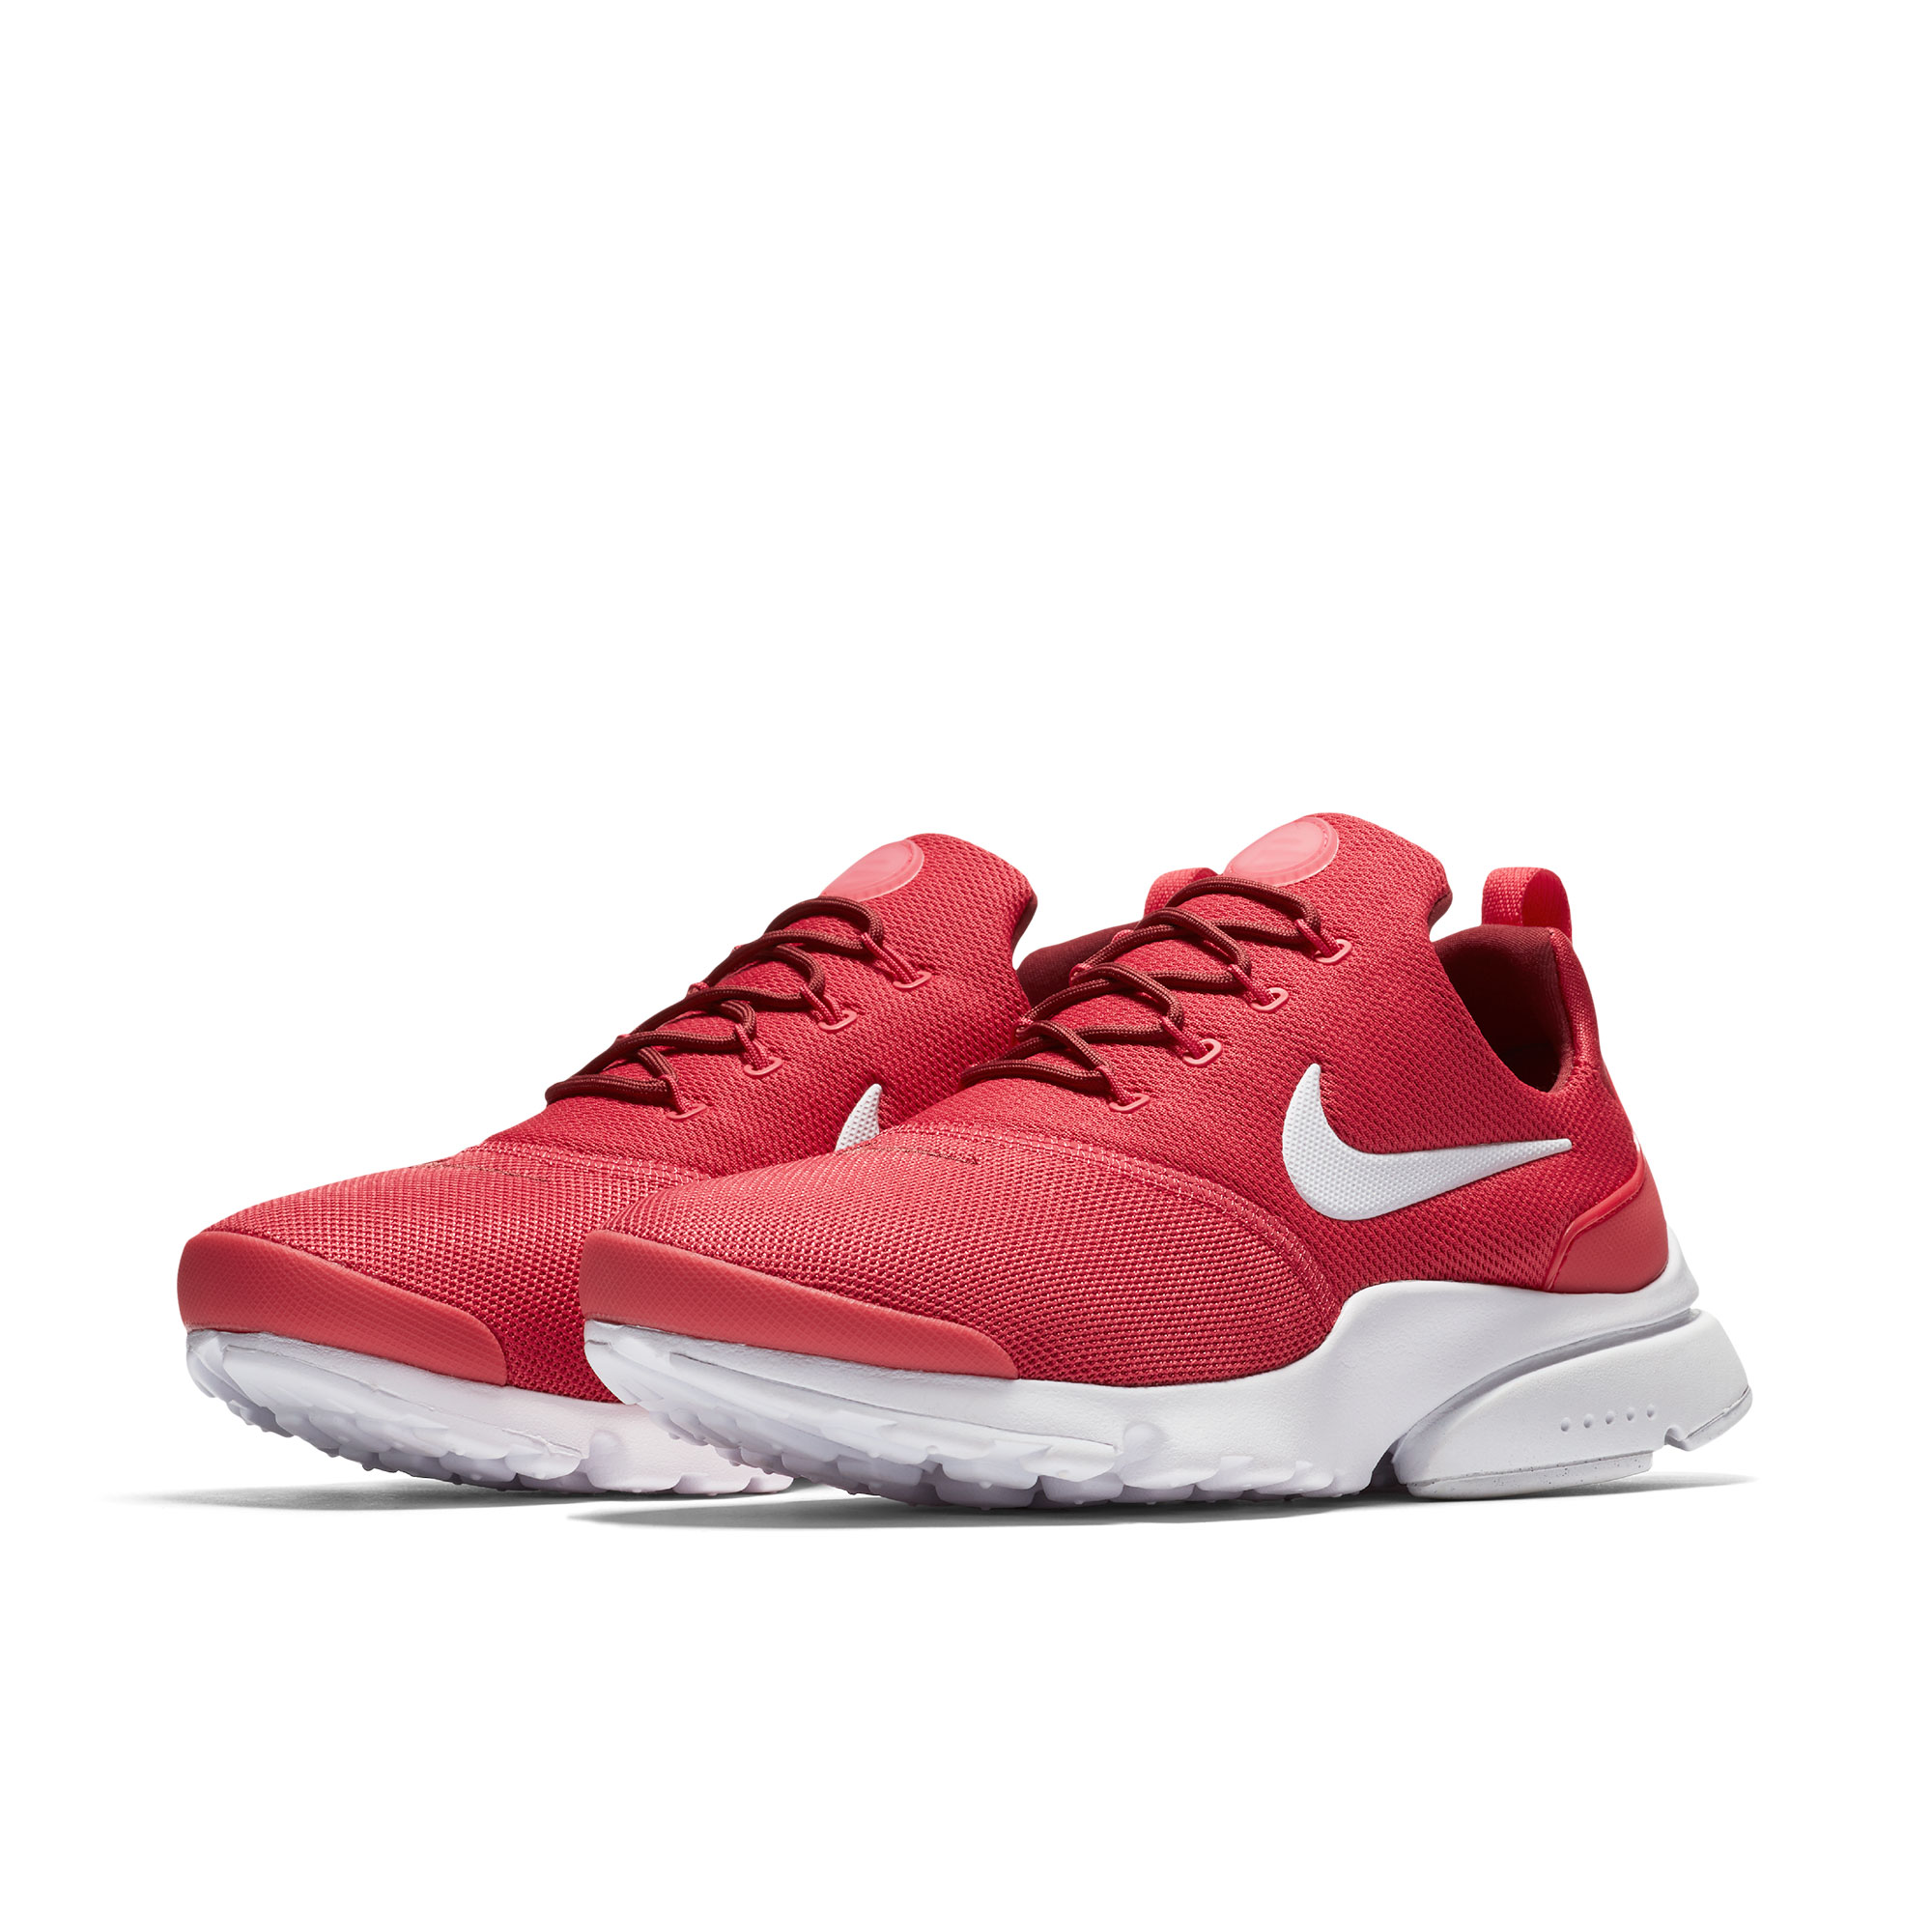 Original New Arrival Authentic NIKE PRESTO FLY Womens Running Shoes Sneakers 910569 Sport Outdoor Breathable Ladies Athletic-in Running Shoes from Sports ...